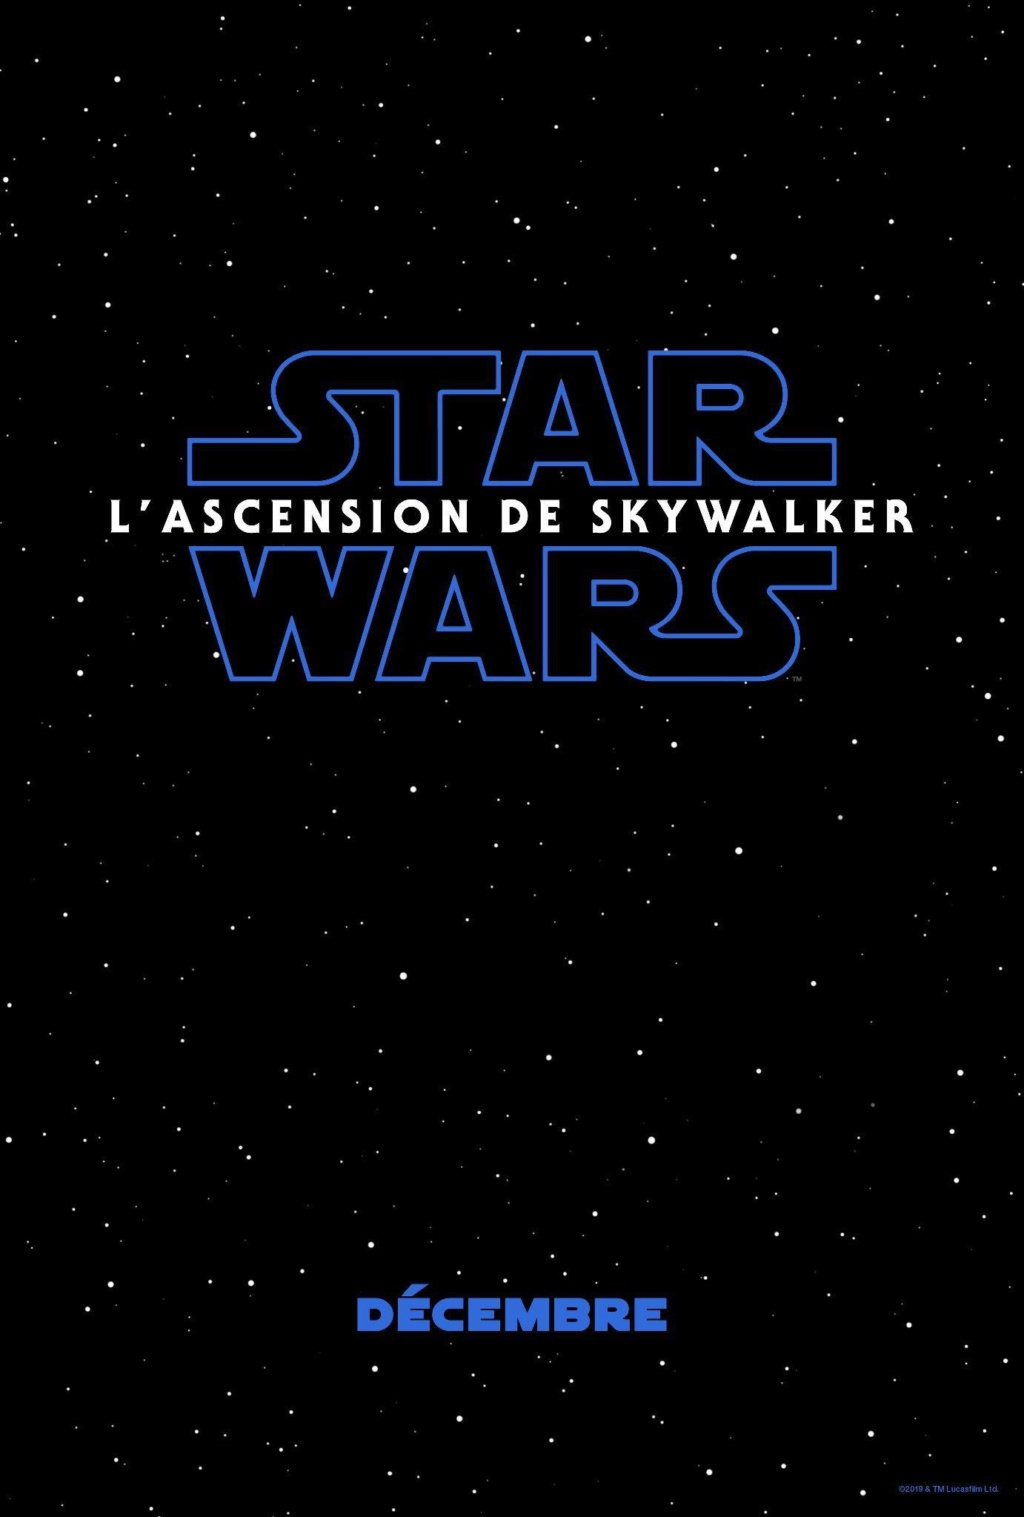 [Lucasfilm] Star Wars : L'Ascension de Skywalker (20 décembre 2019) - Page 9 A5823a10